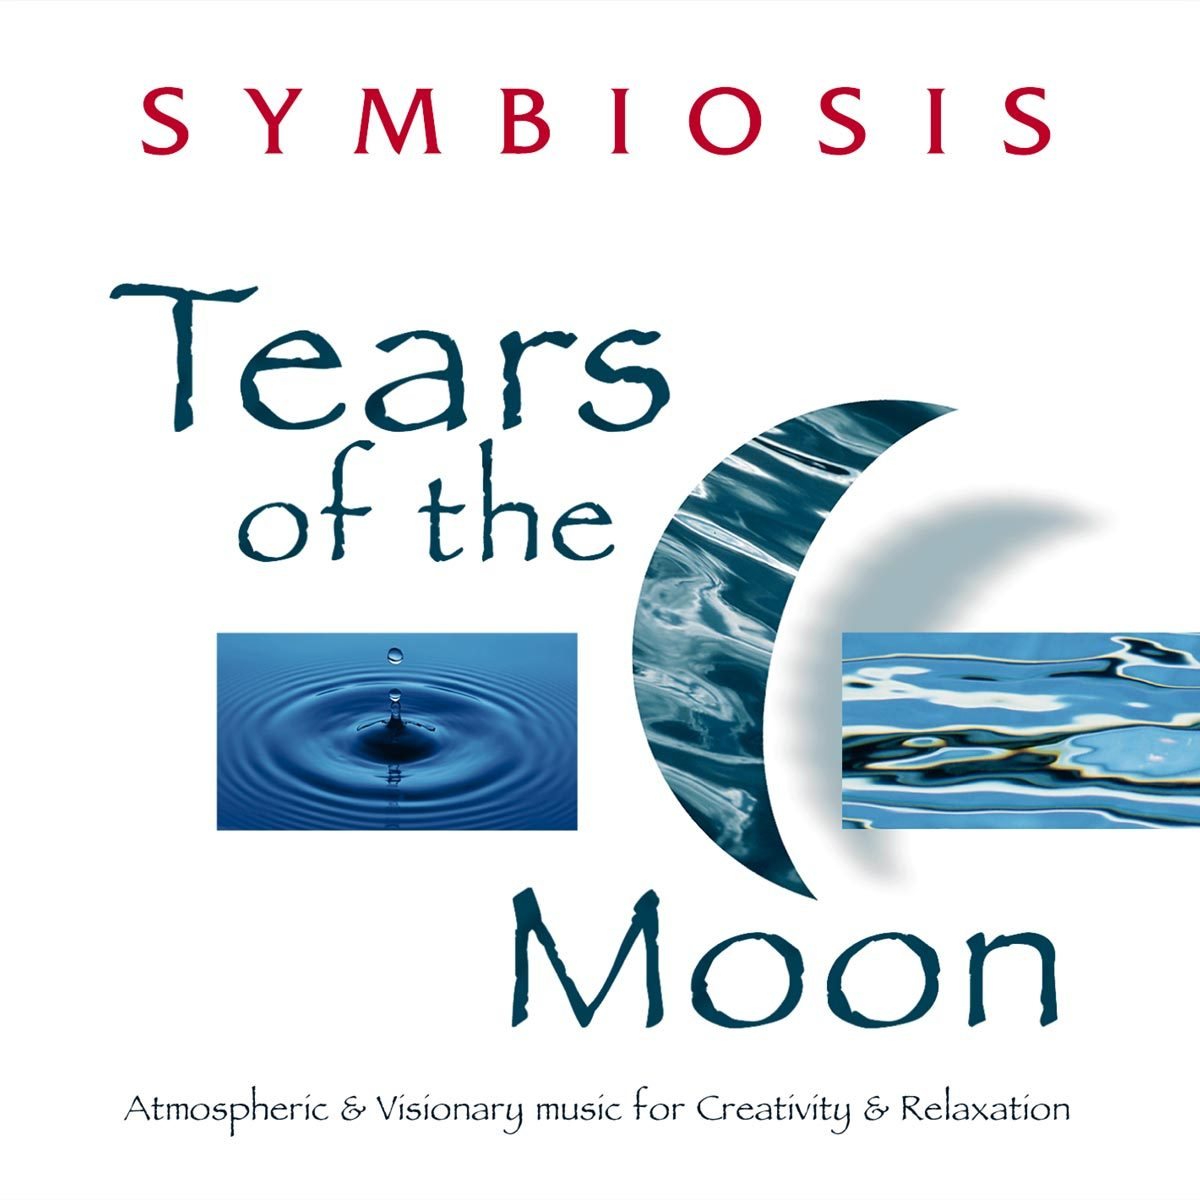 The artwork for Tears of the Moon by Symbiosis